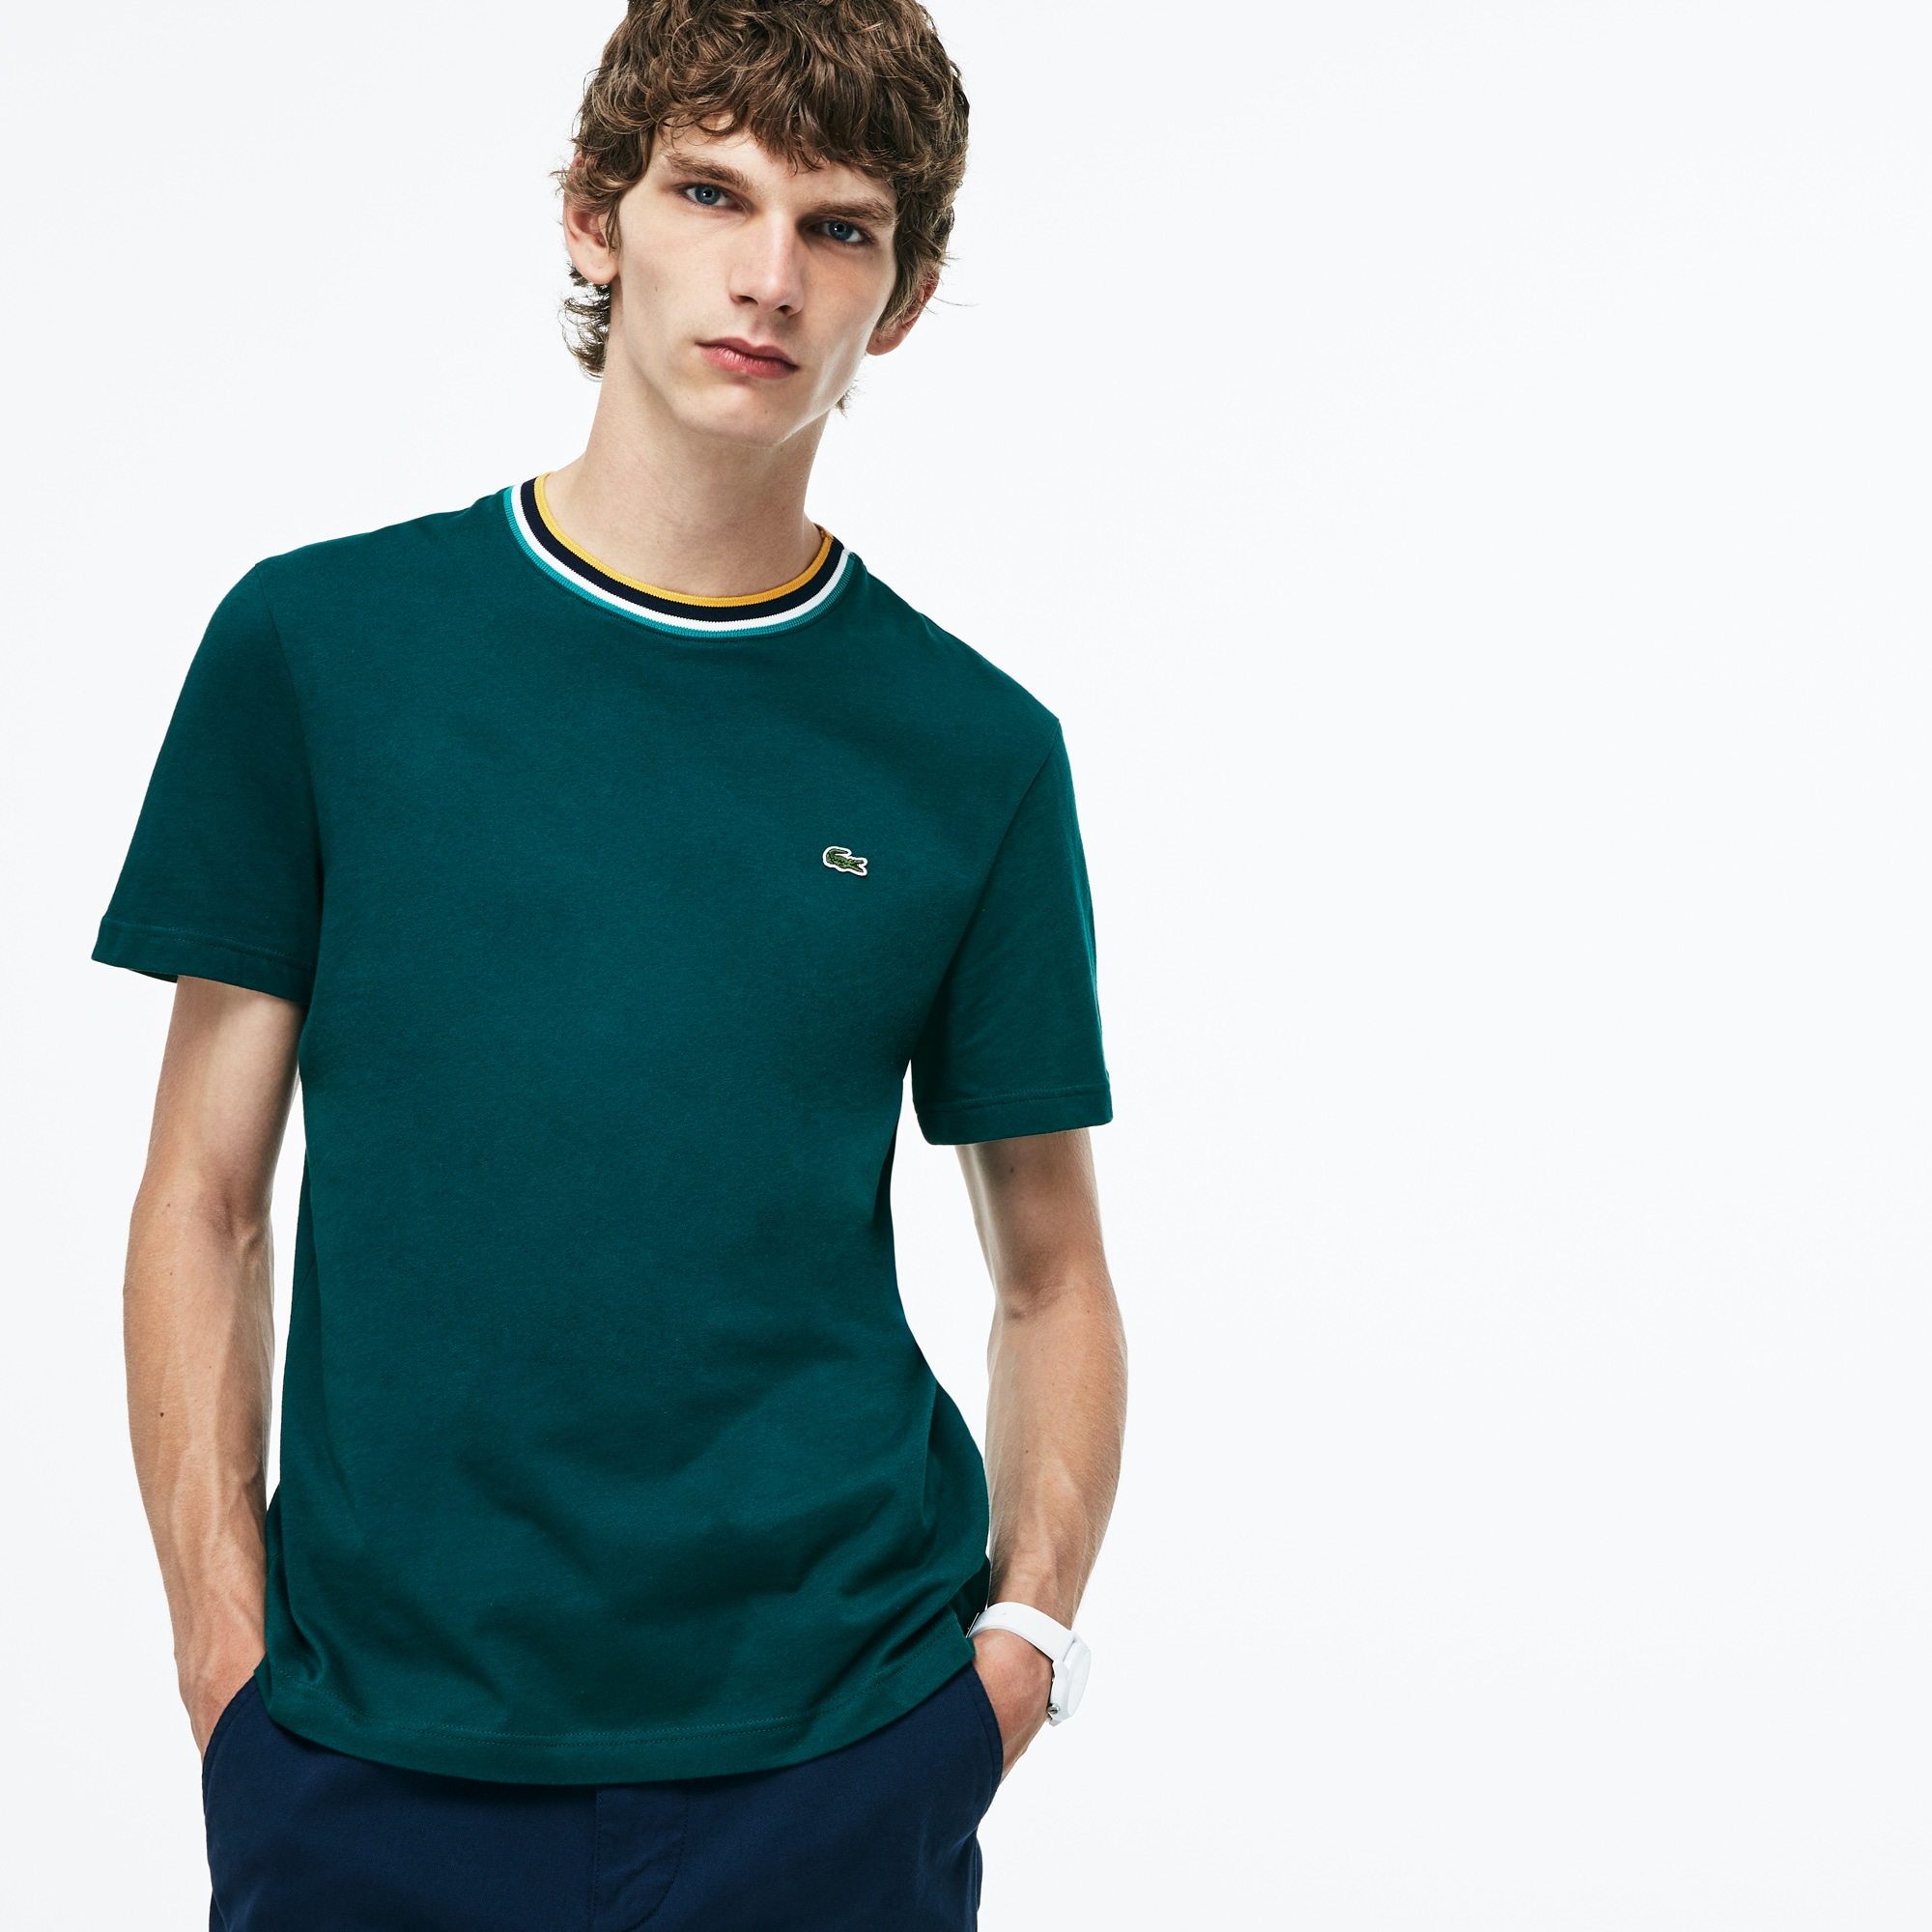 Men's Striped Ribbed Crew Neck Cotton Jersey T-shirt